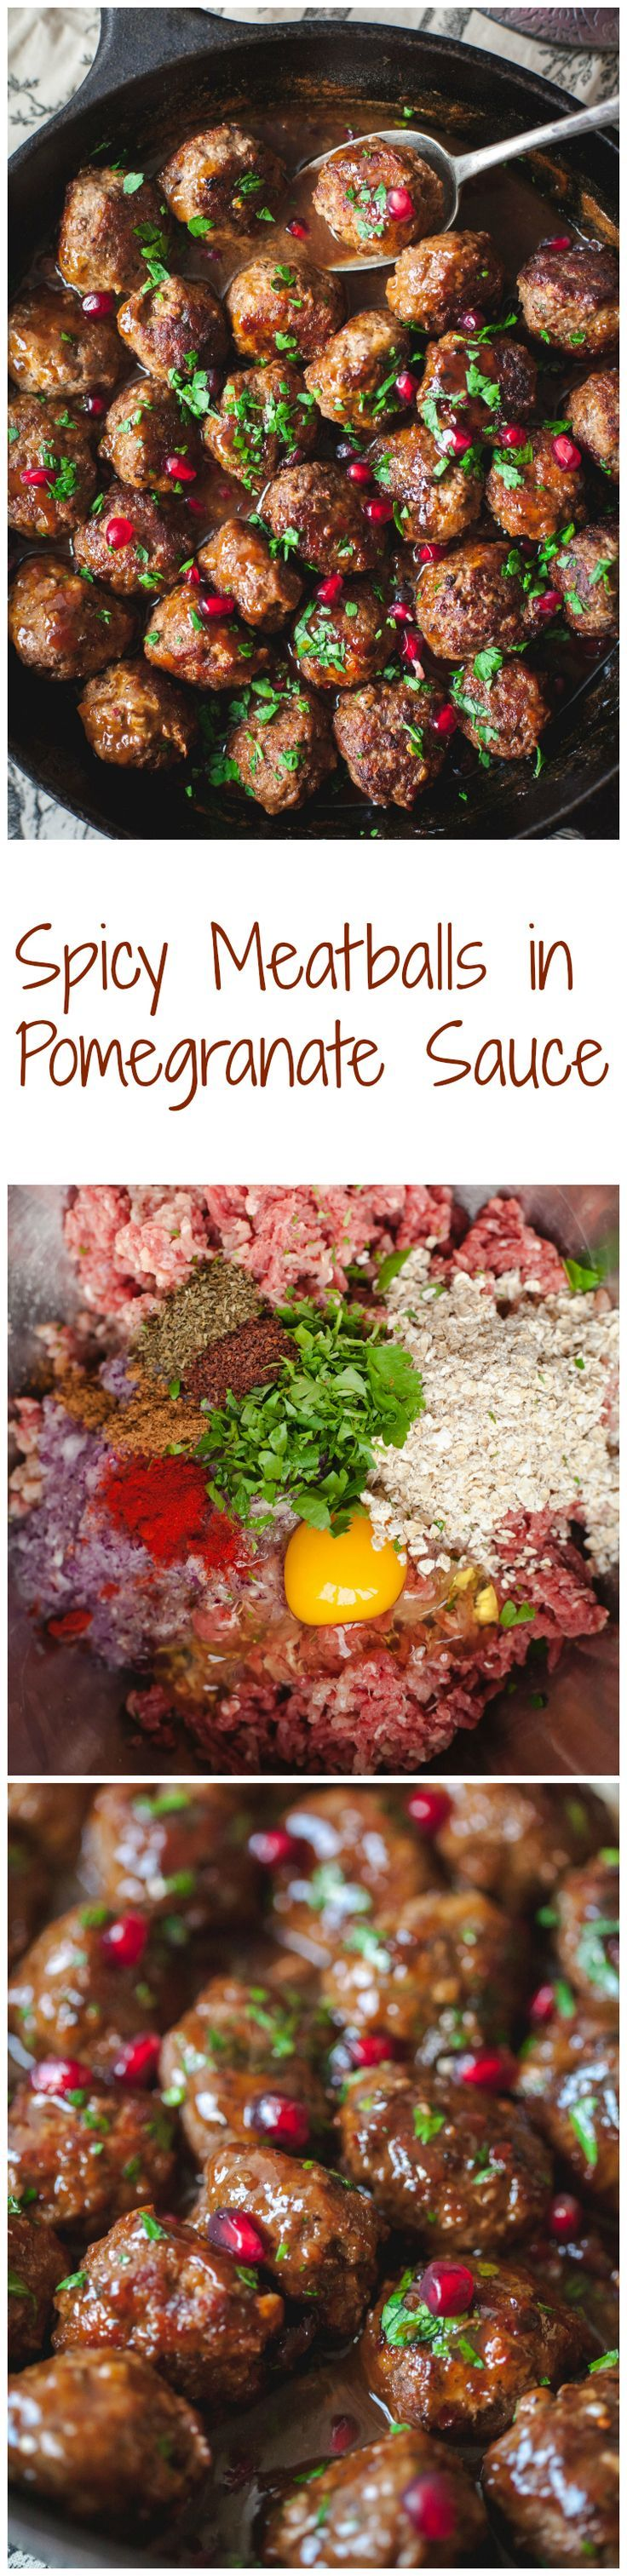 Nothing beats homemade meatballs and if you like sweet and sour sauces, you will fall in love with this pomegranate sauce that the meatballs are glazed in!